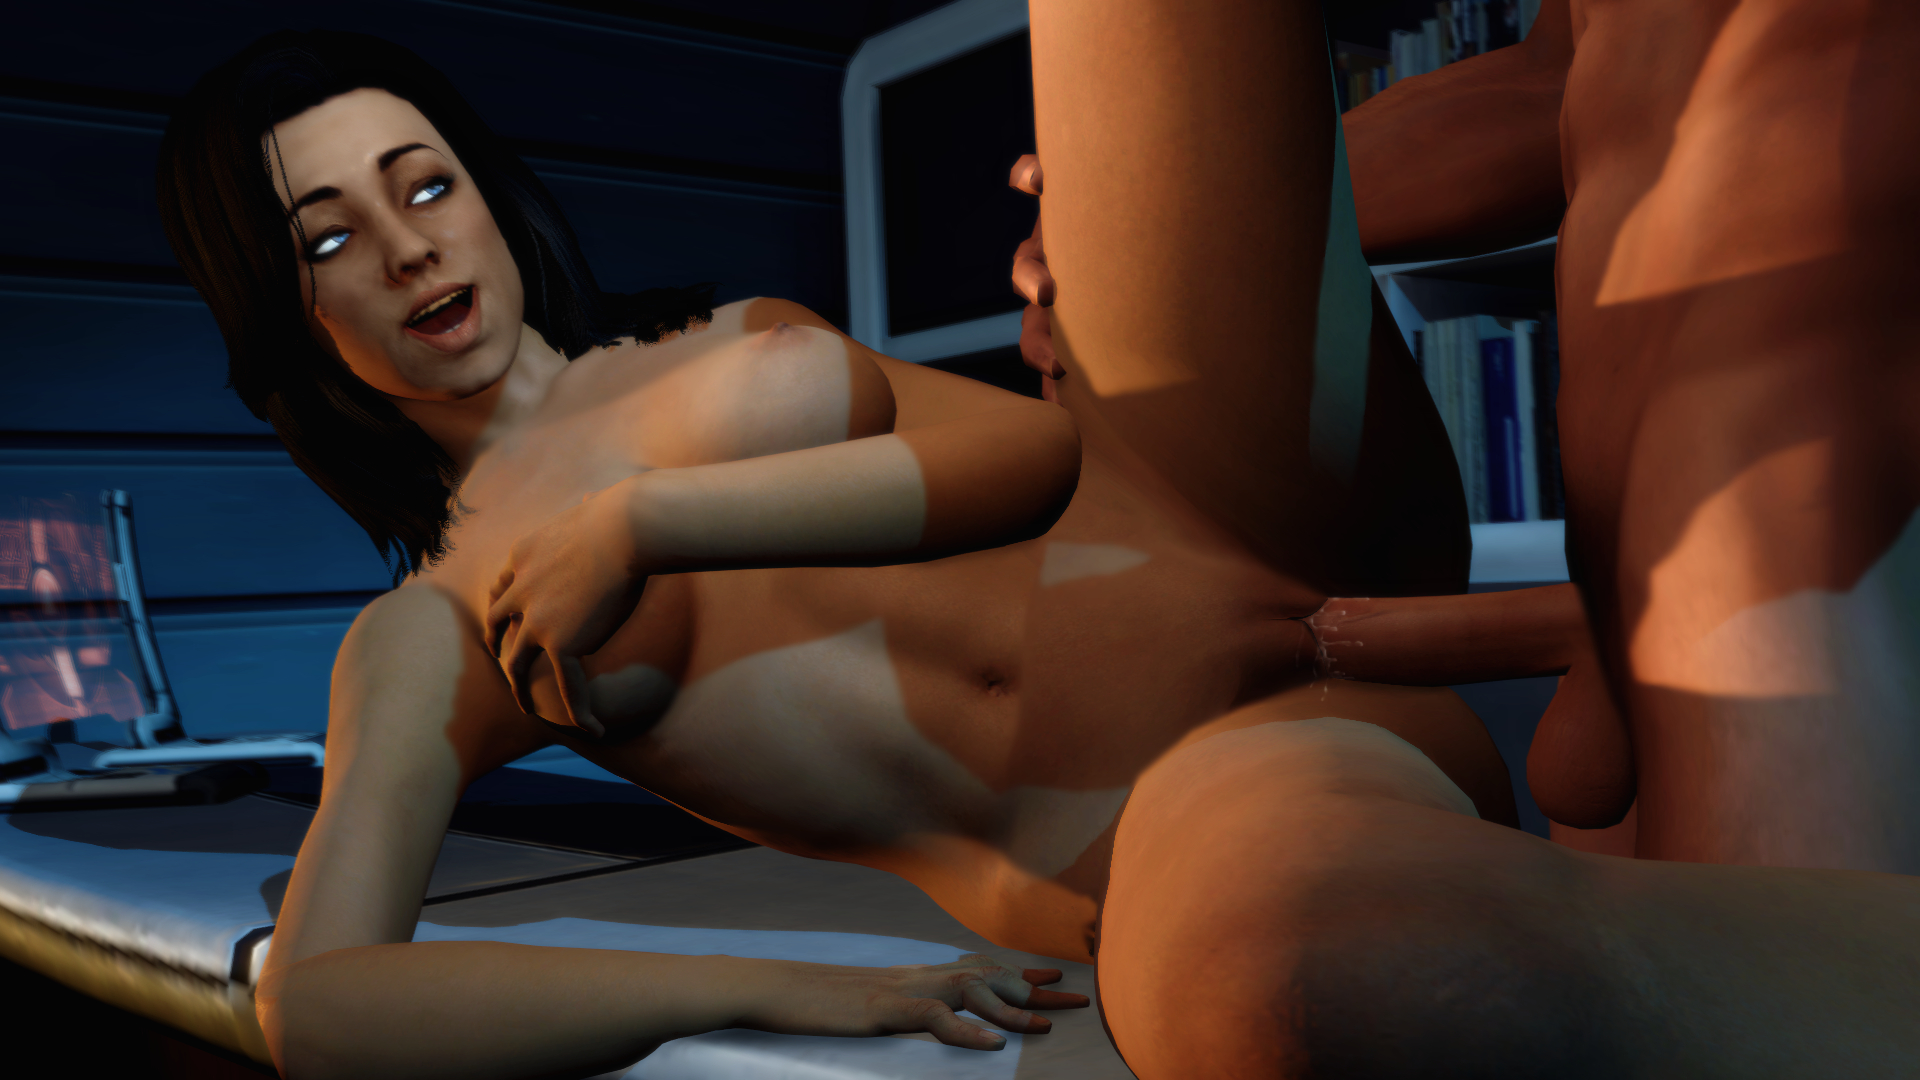 mass effect naked females